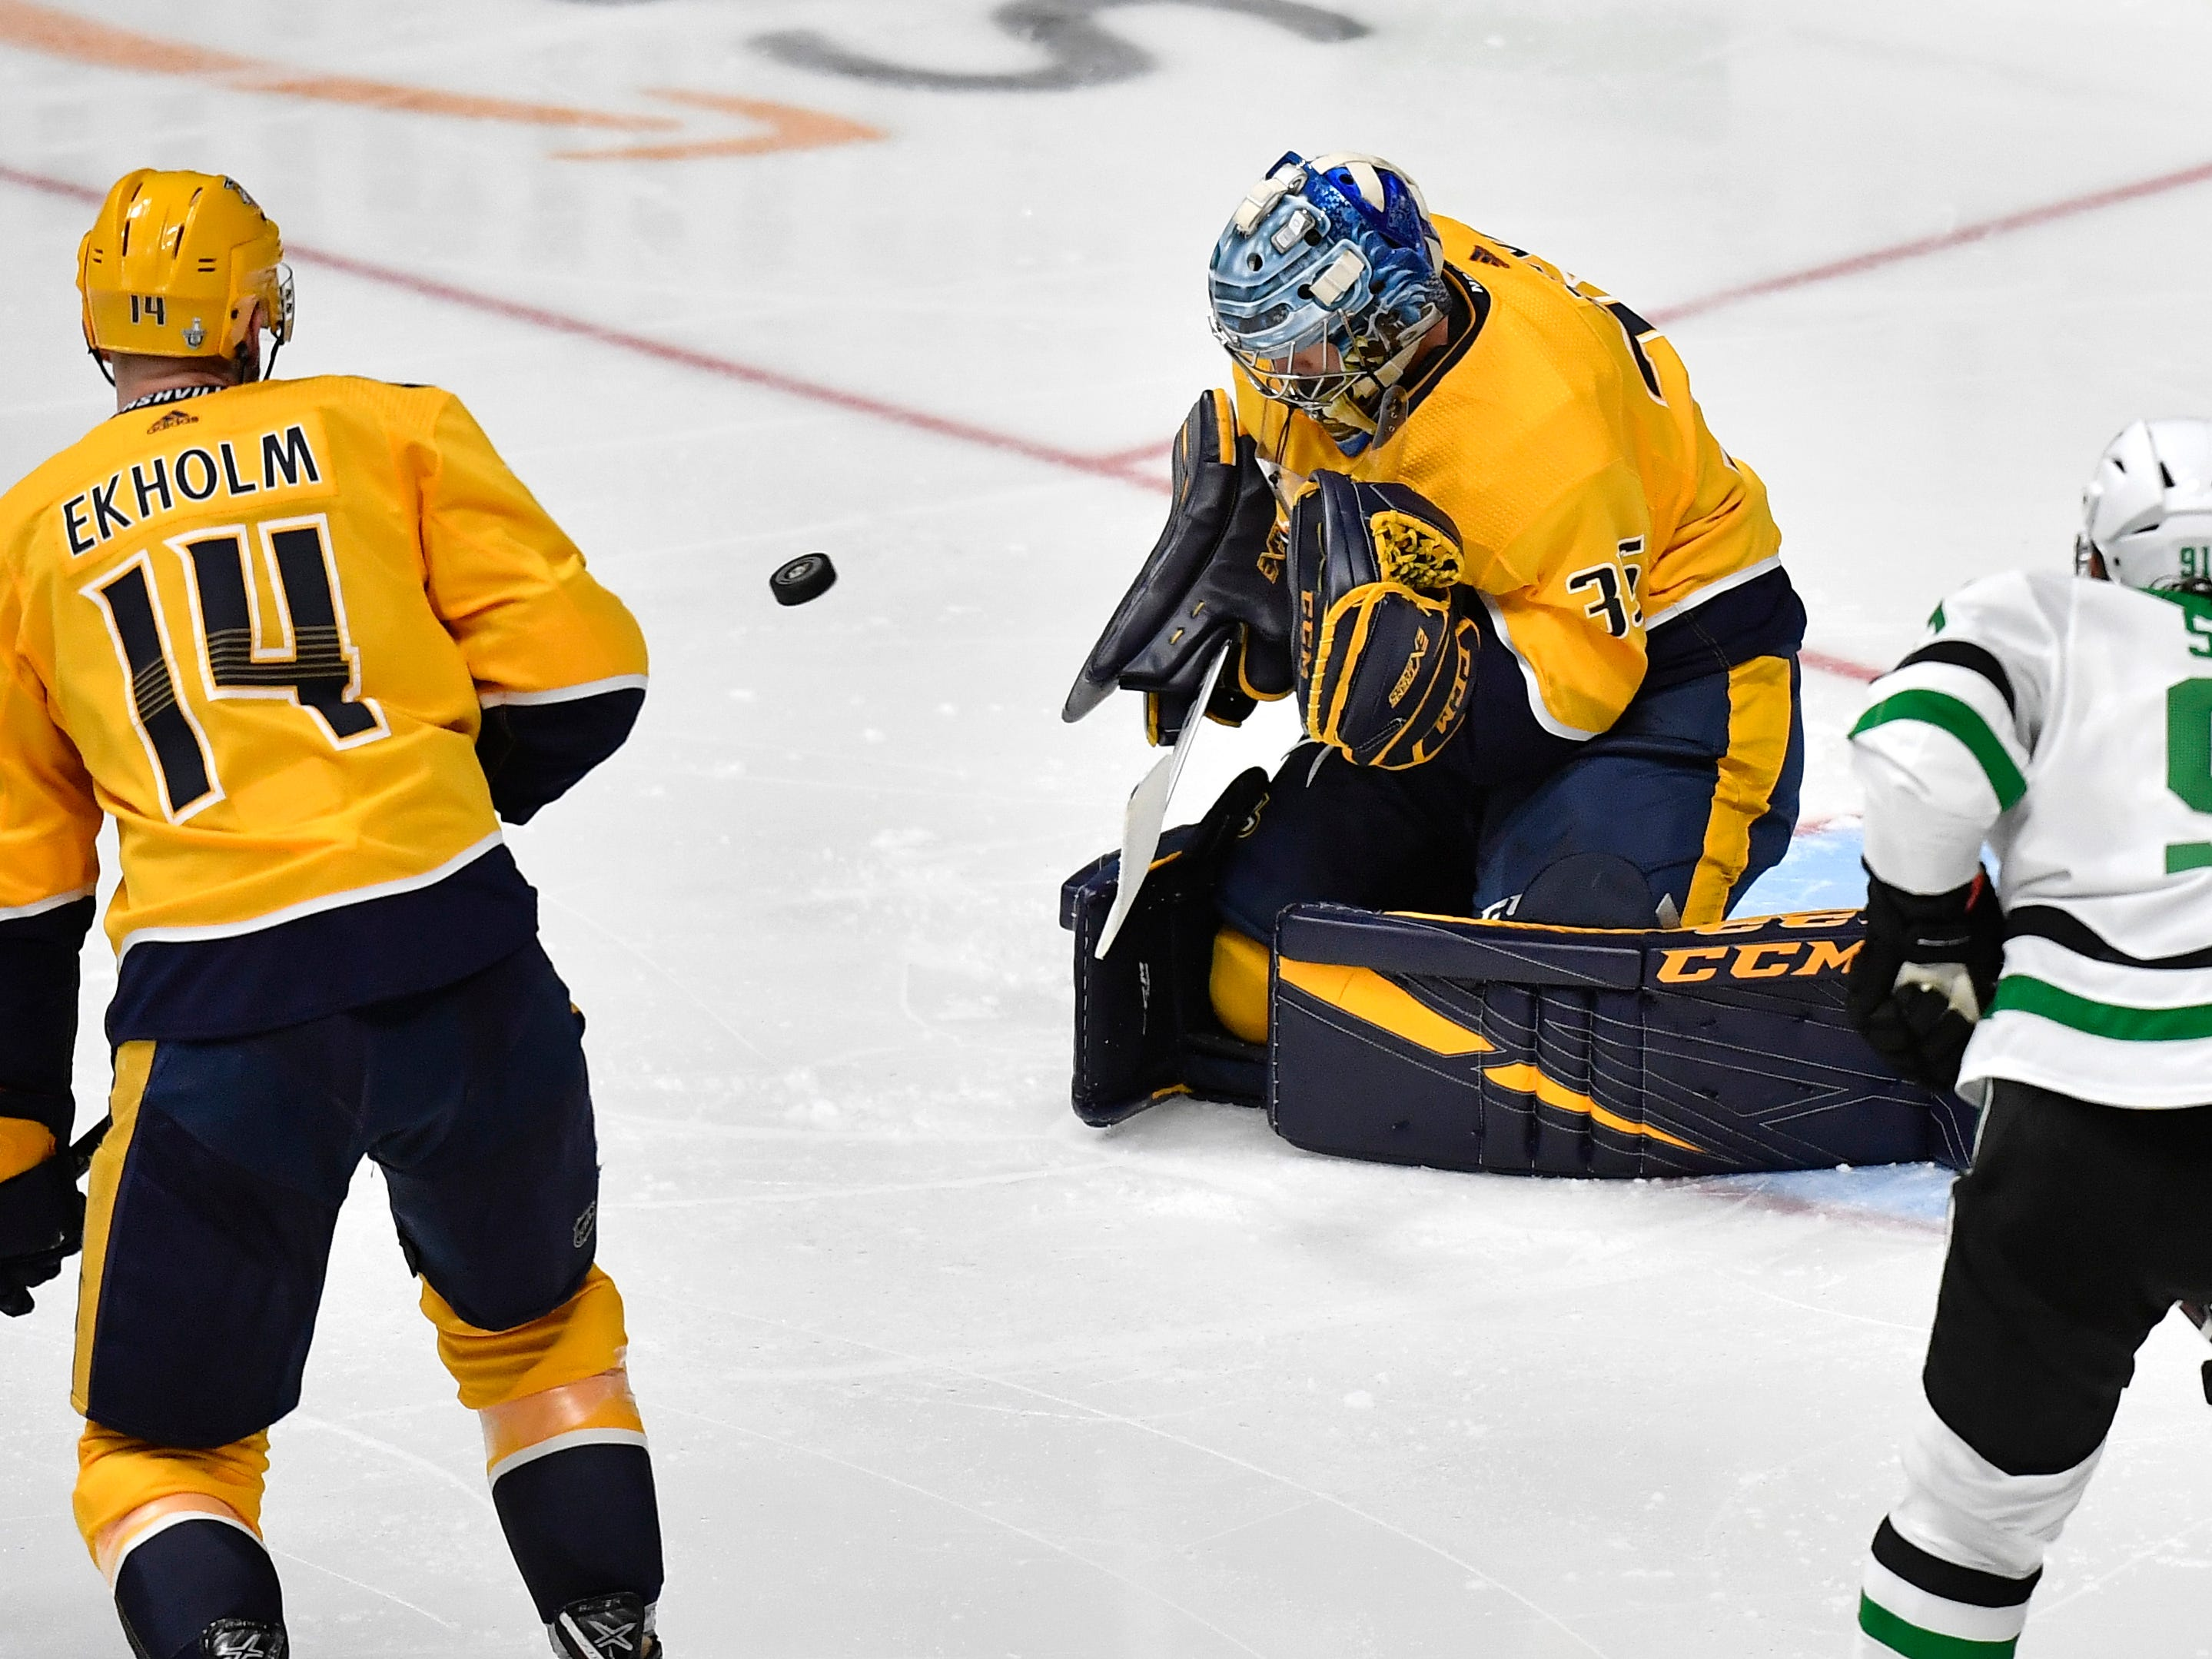 Nashville Predators goaltender Pekka Rinne (35) stops the puck during the seccond period of the divisional semifinal game against the Dallas Stars at Bridgestone Arena in Nashville, Tenn., Wednesday, April 10, 2019.